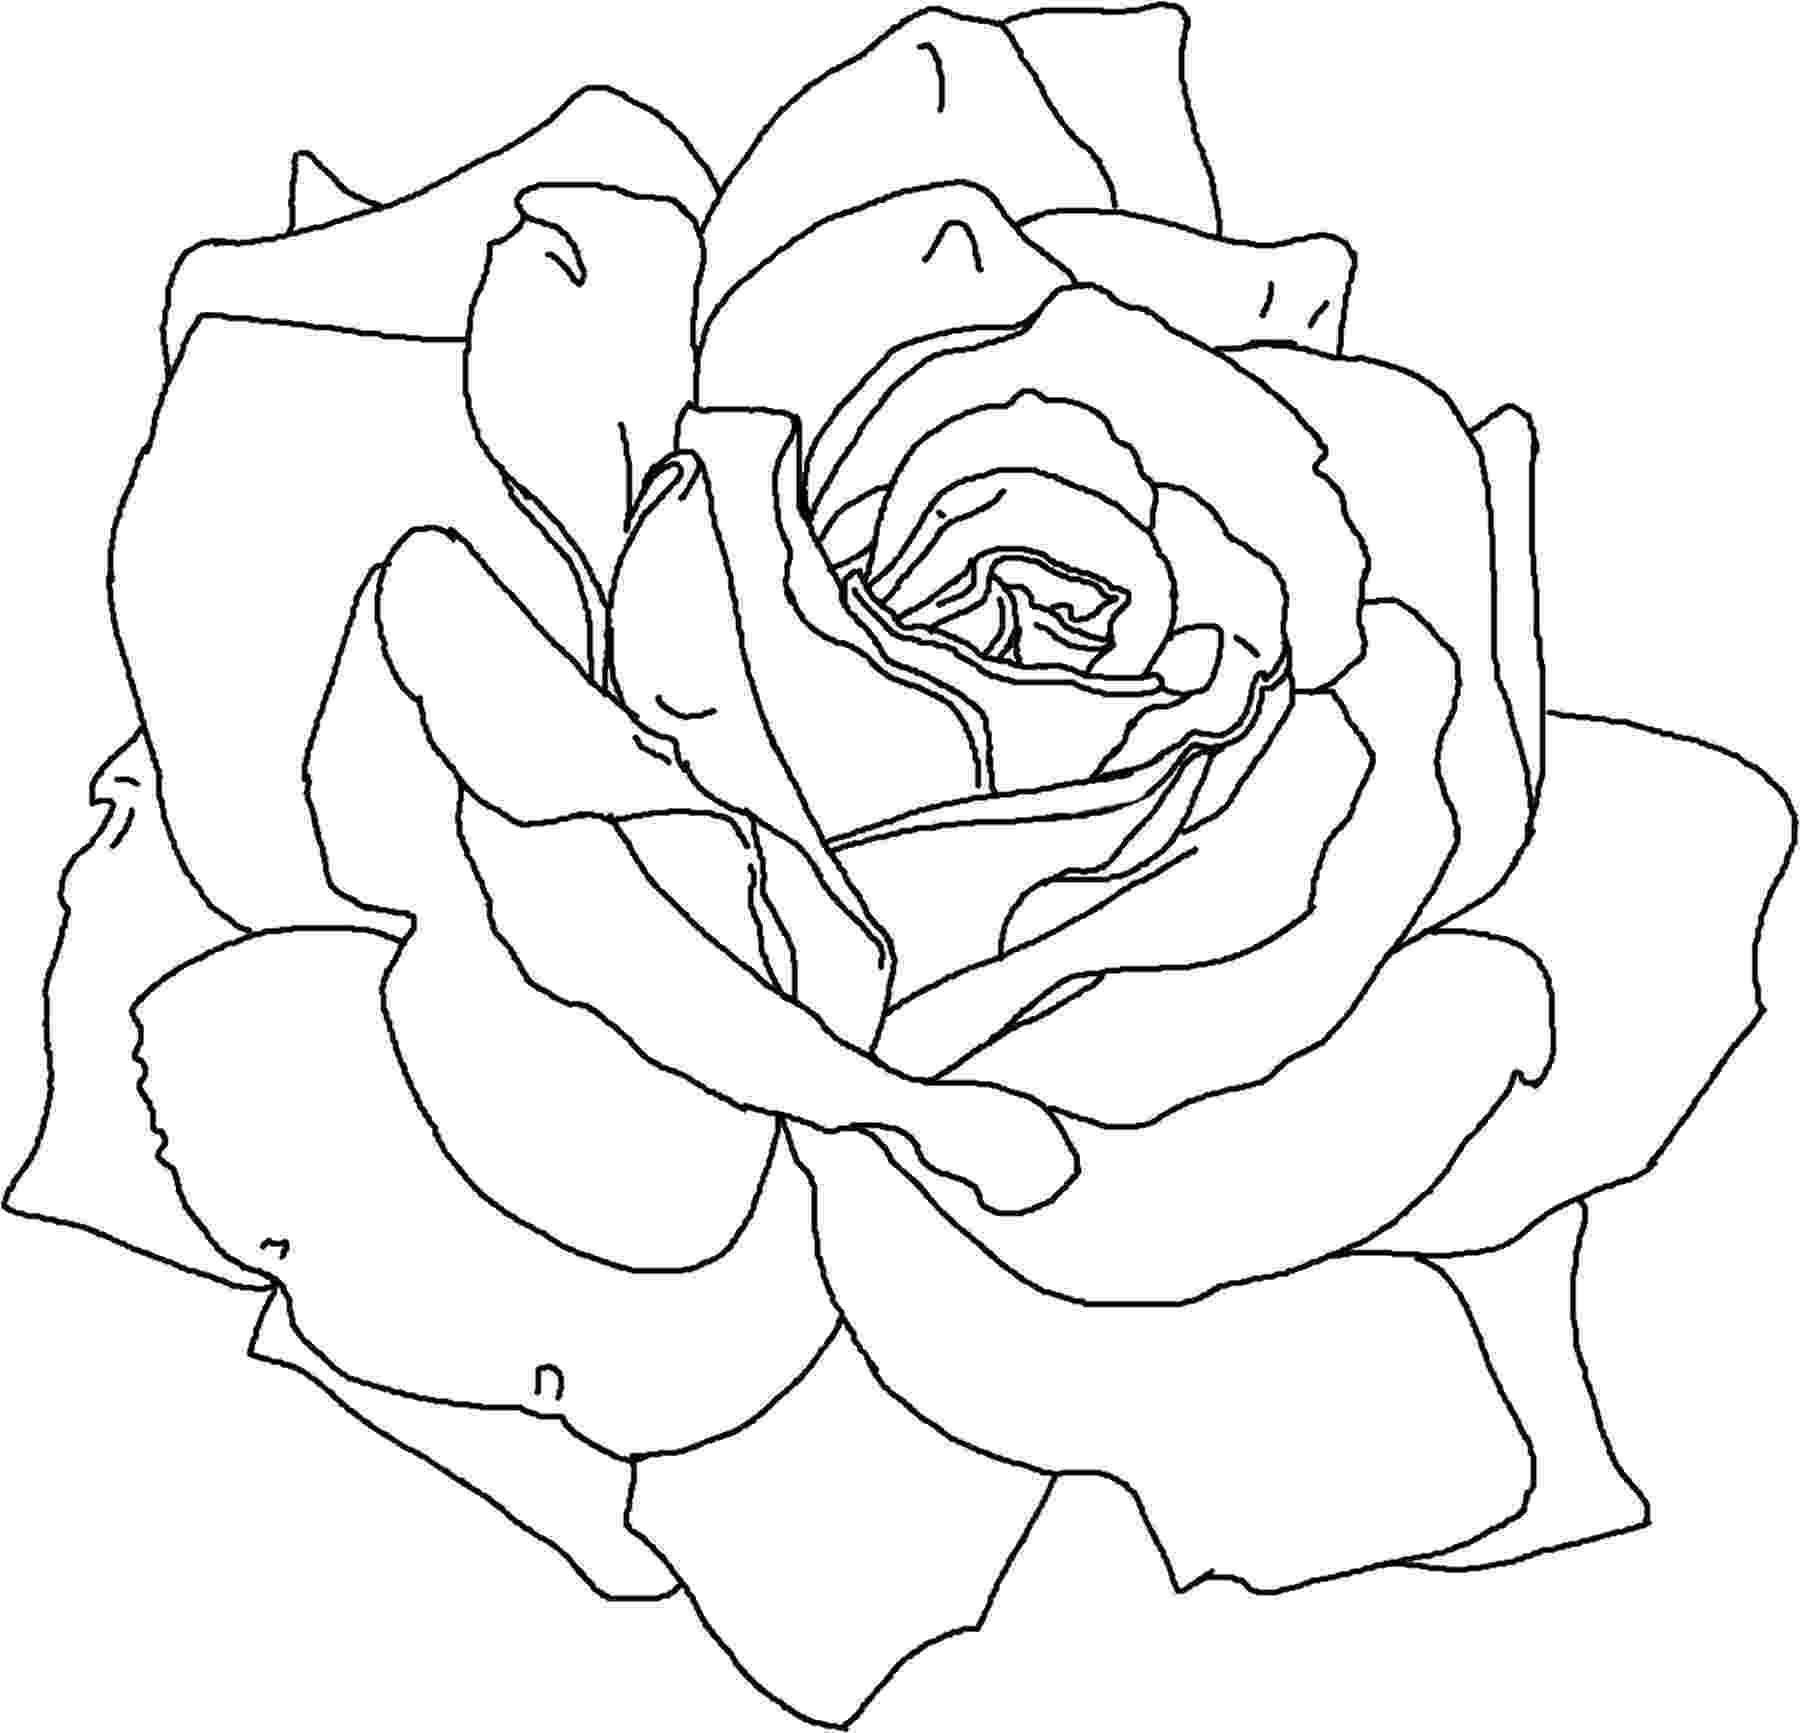 flower coloring sheets for kids free printable flower coloring pages for kids best coloring for sheets flower kids